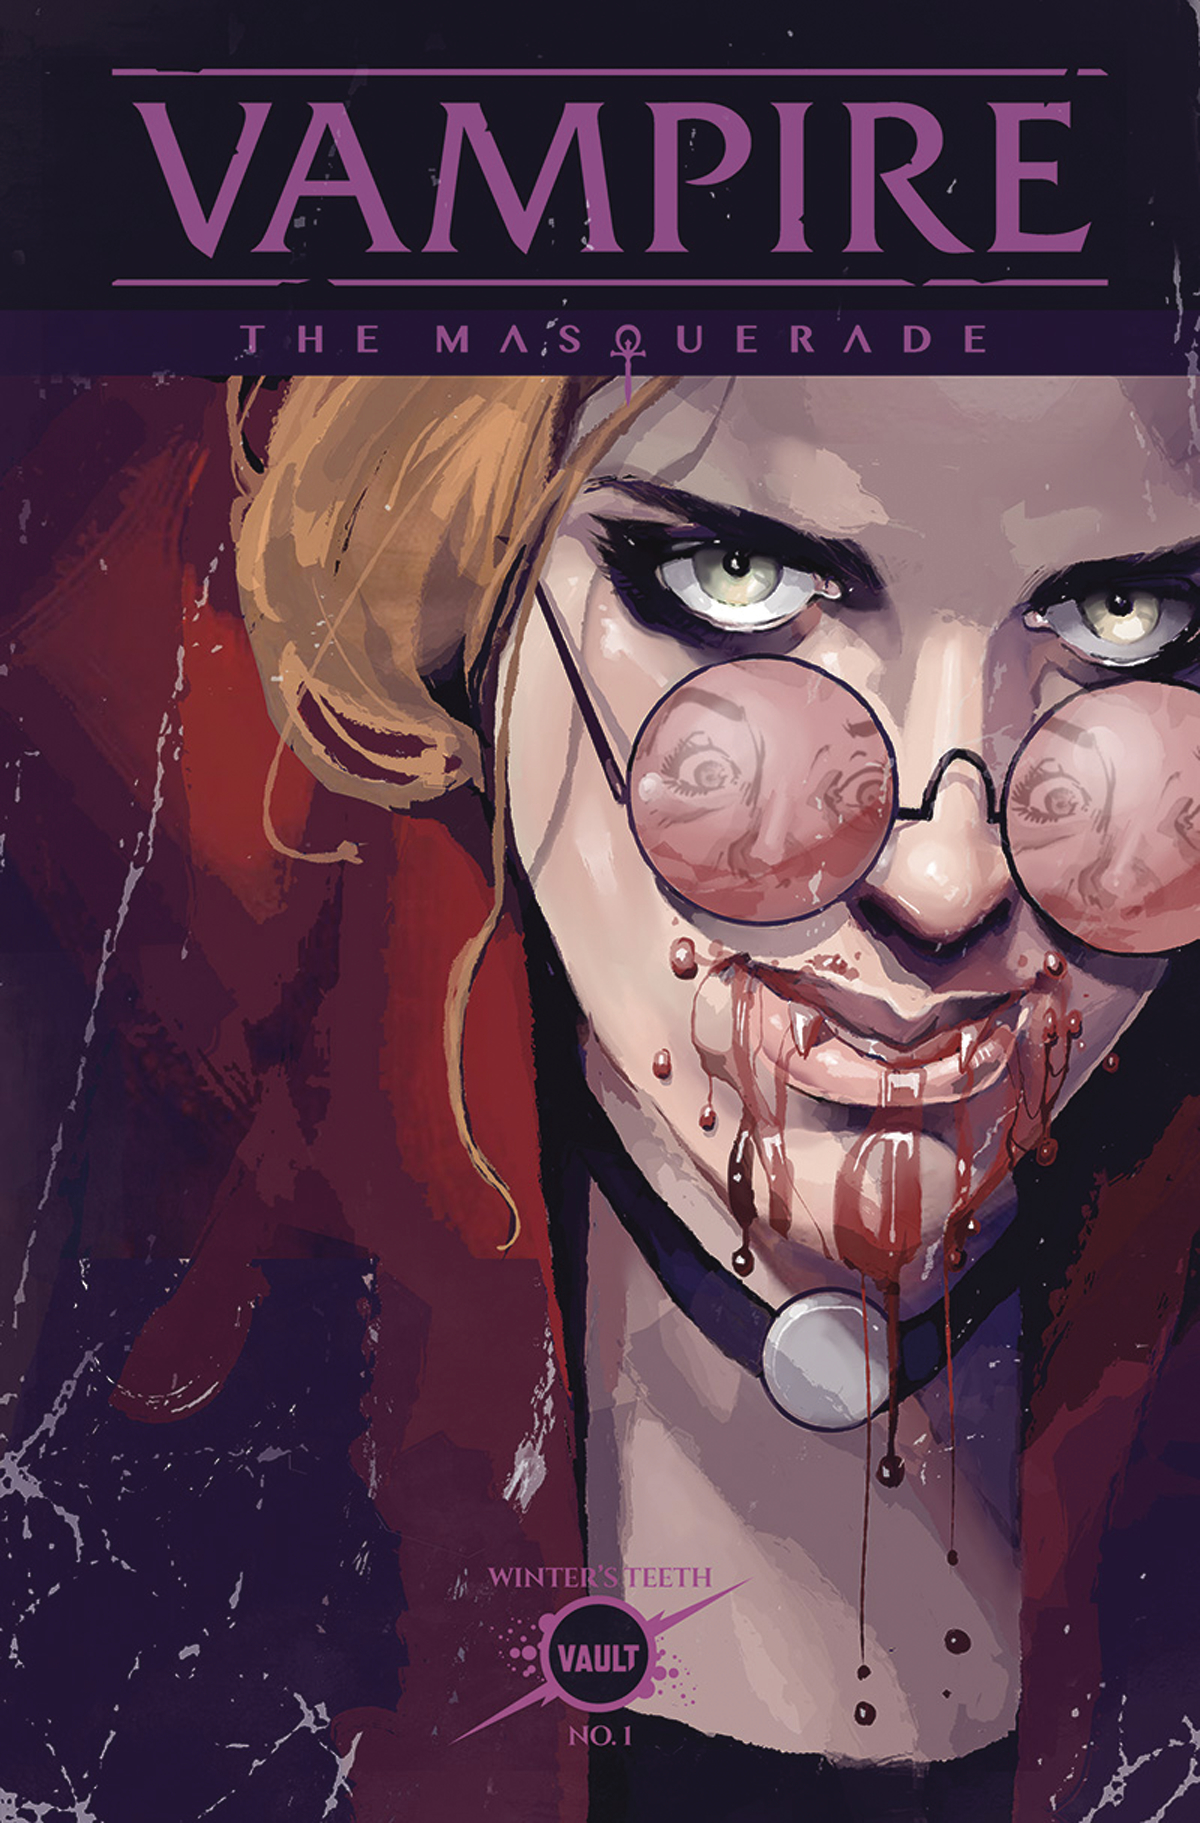 Details about  /Vampire The Masquerade Winter/'s Teeth #1 Cover C August 2020 Vault Comics